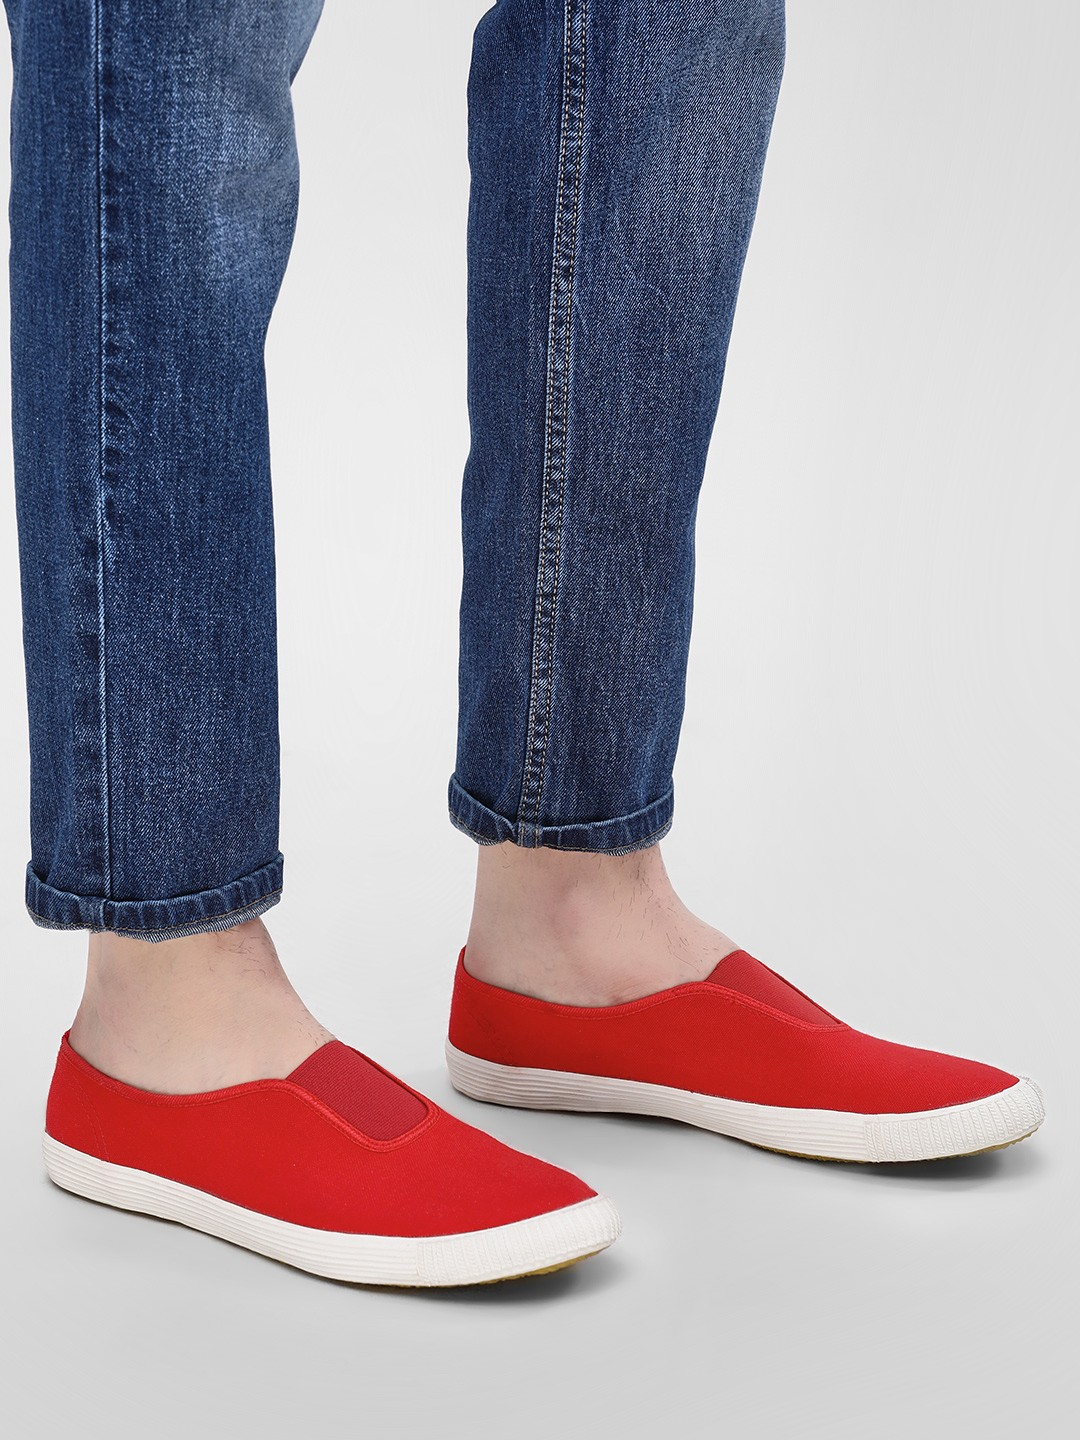 KOOVS Red Slip-On Gusset Plimsoll Shoes 1